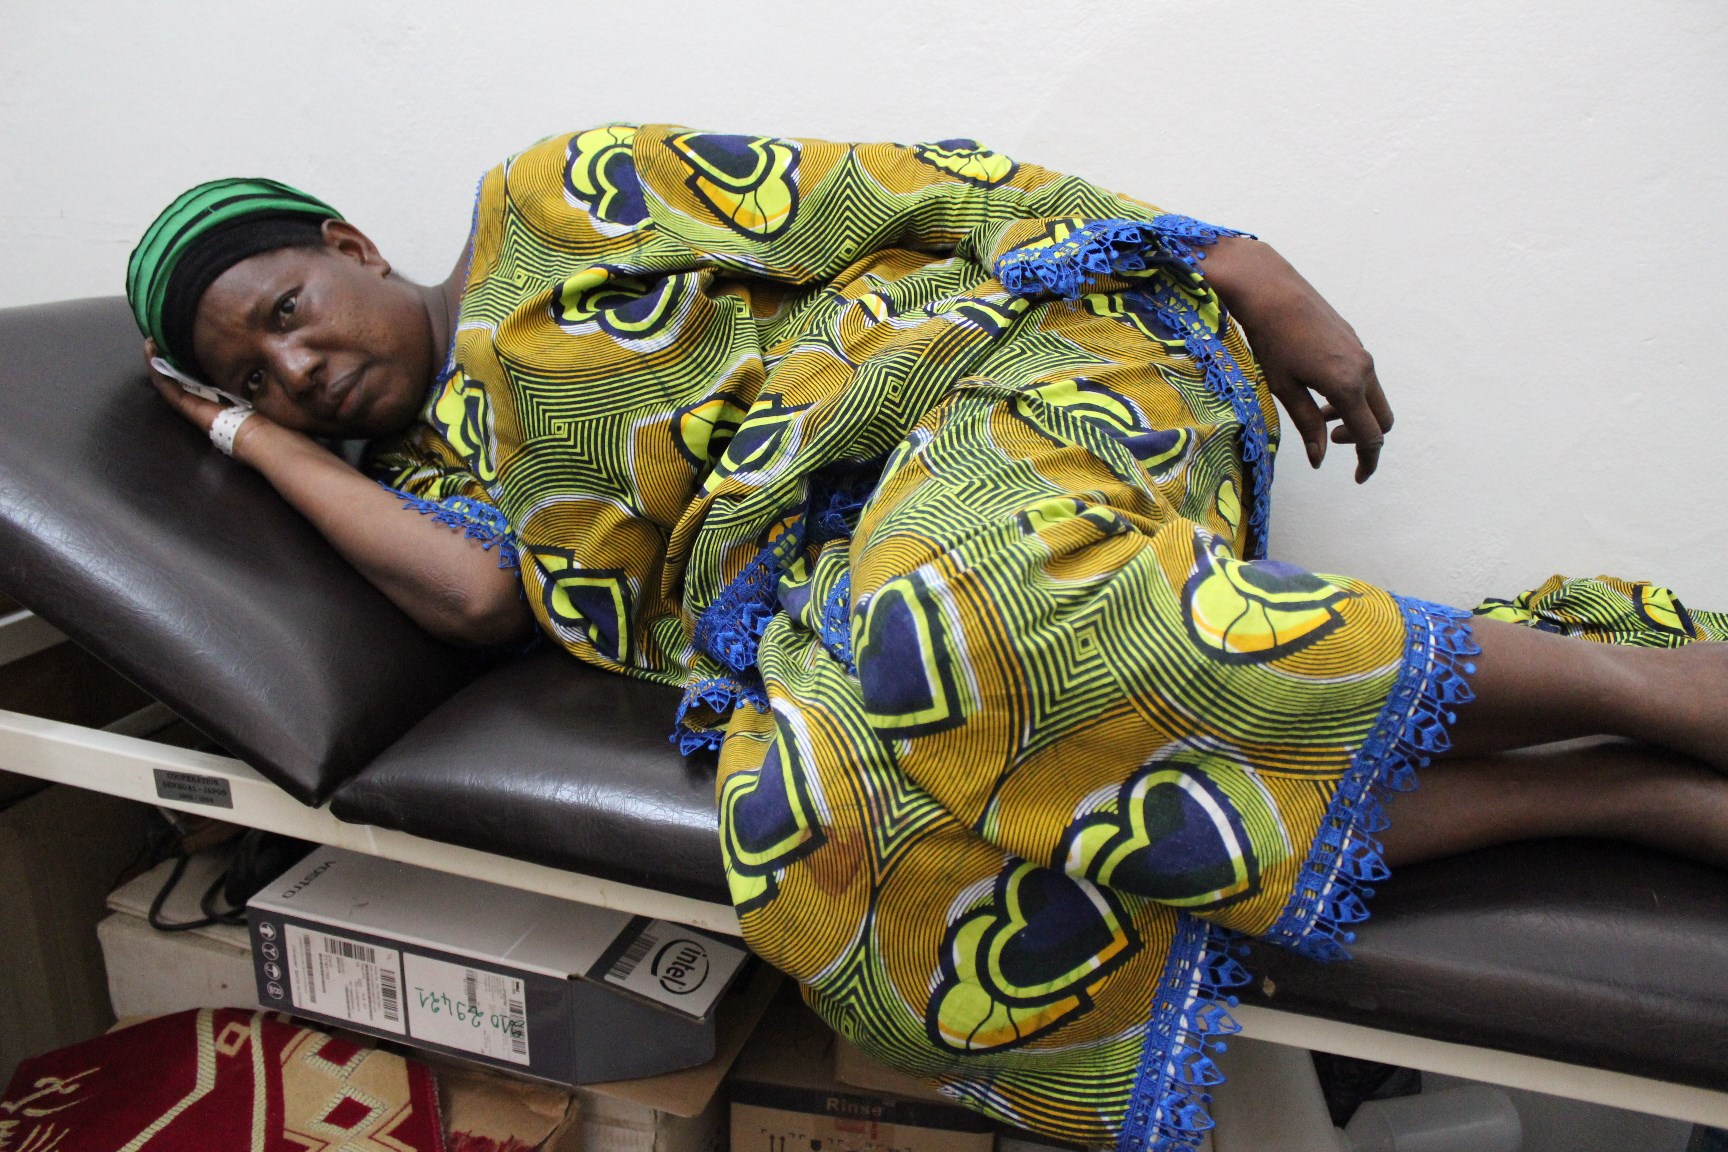 Forty-three-year-old Khadiatou Dia was diagnosed with breast cancer nearly a year ago. She is currently undergoing bi-monthly chemotherapy treatments at the Dantec Hospital in Dakar, Senegal - and she often goes without pain medication as stocks are unava